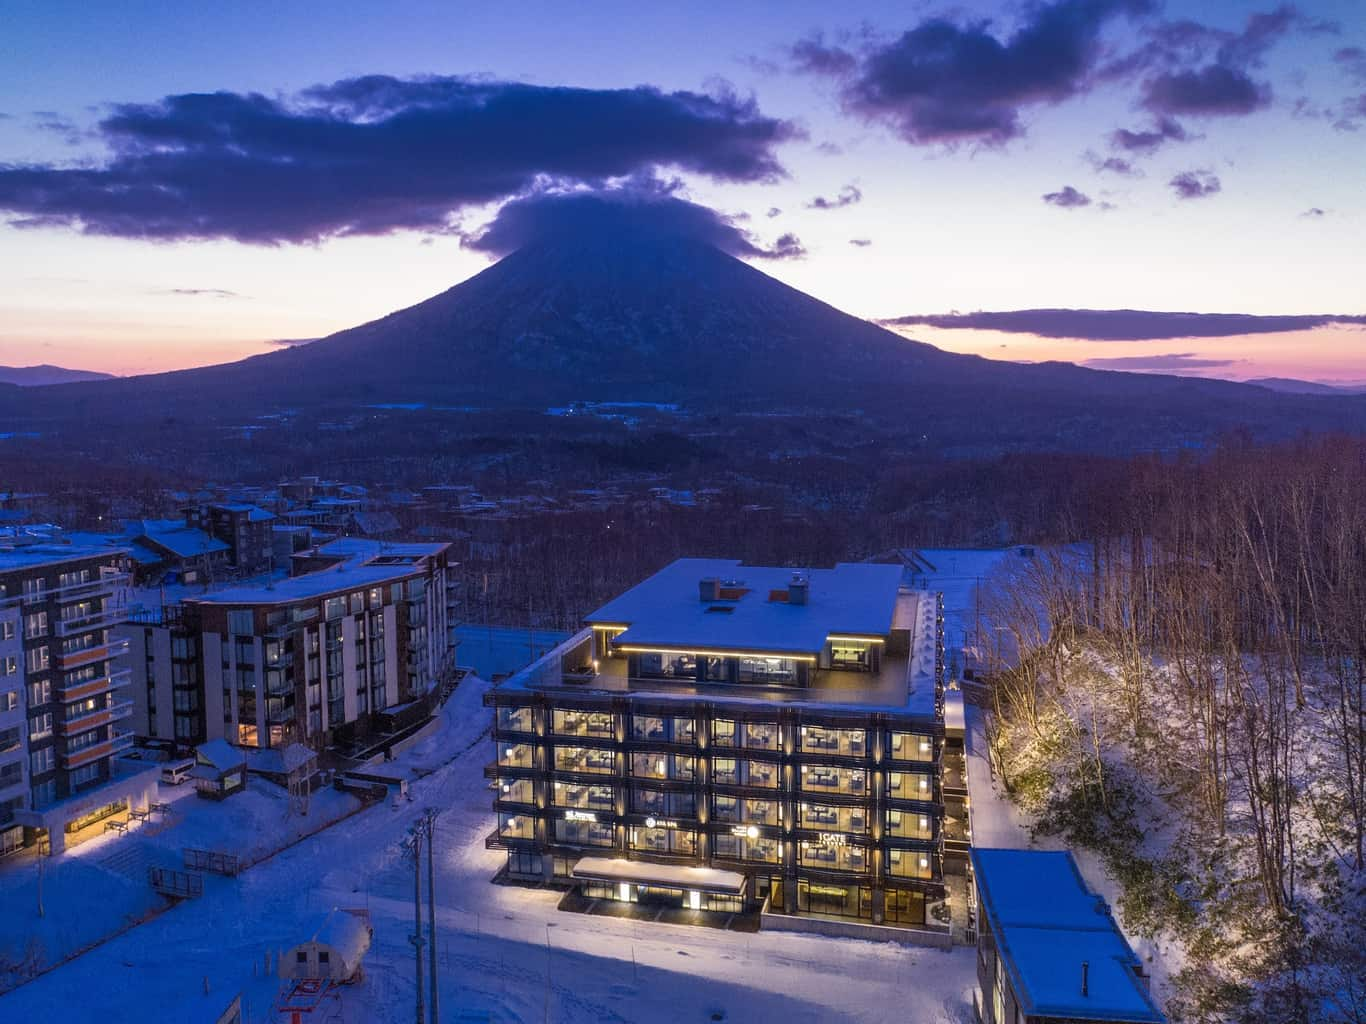 View over Aya Niseko at sunset wit Mount Yotei